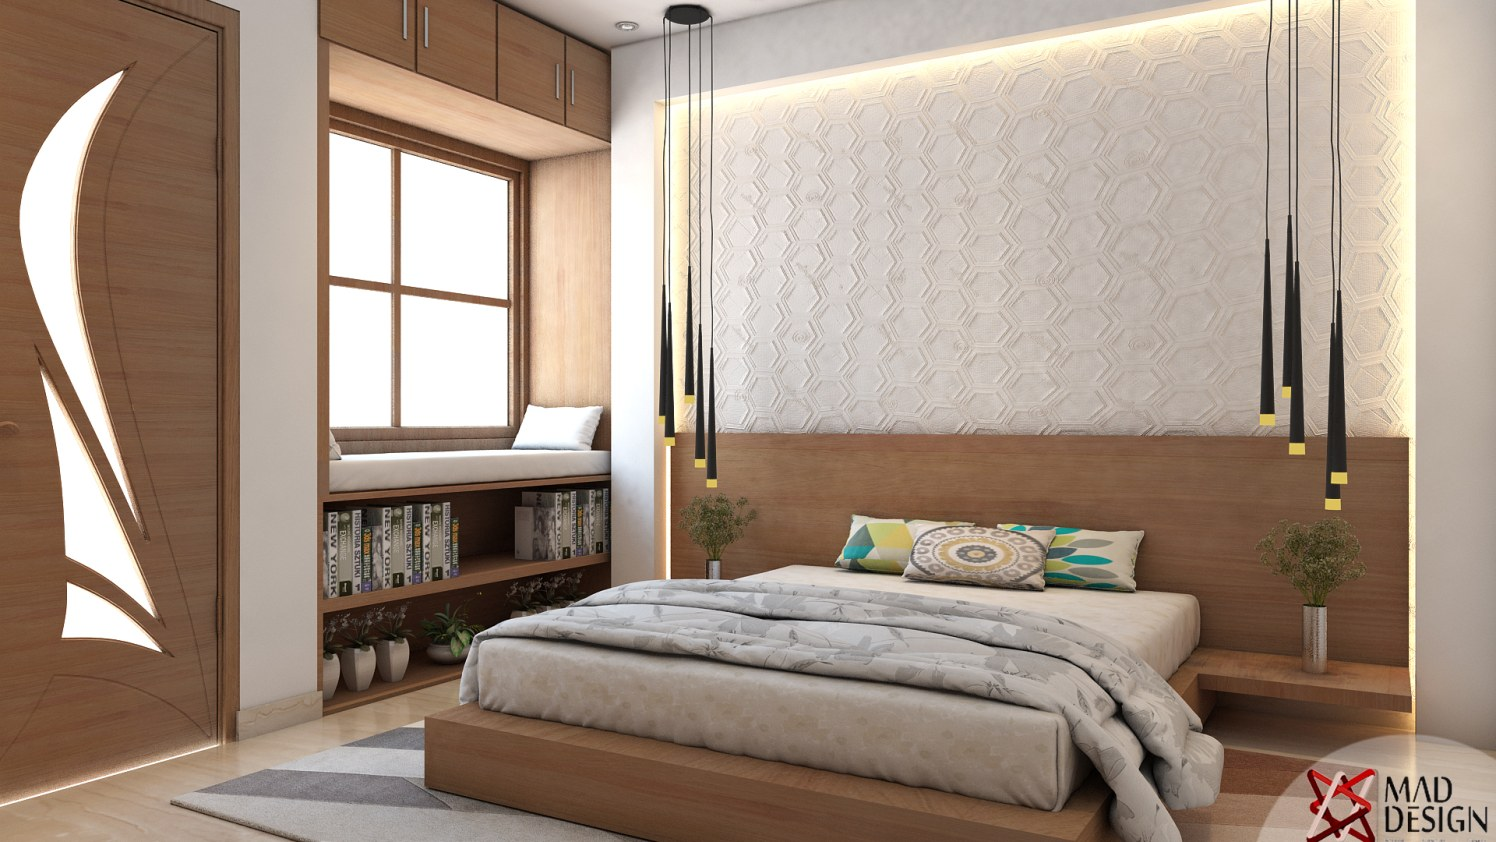 Bedroom with wall decor window and false ceiling by MAD design  Bedroom Modern | Interior Design Photos & Ideas